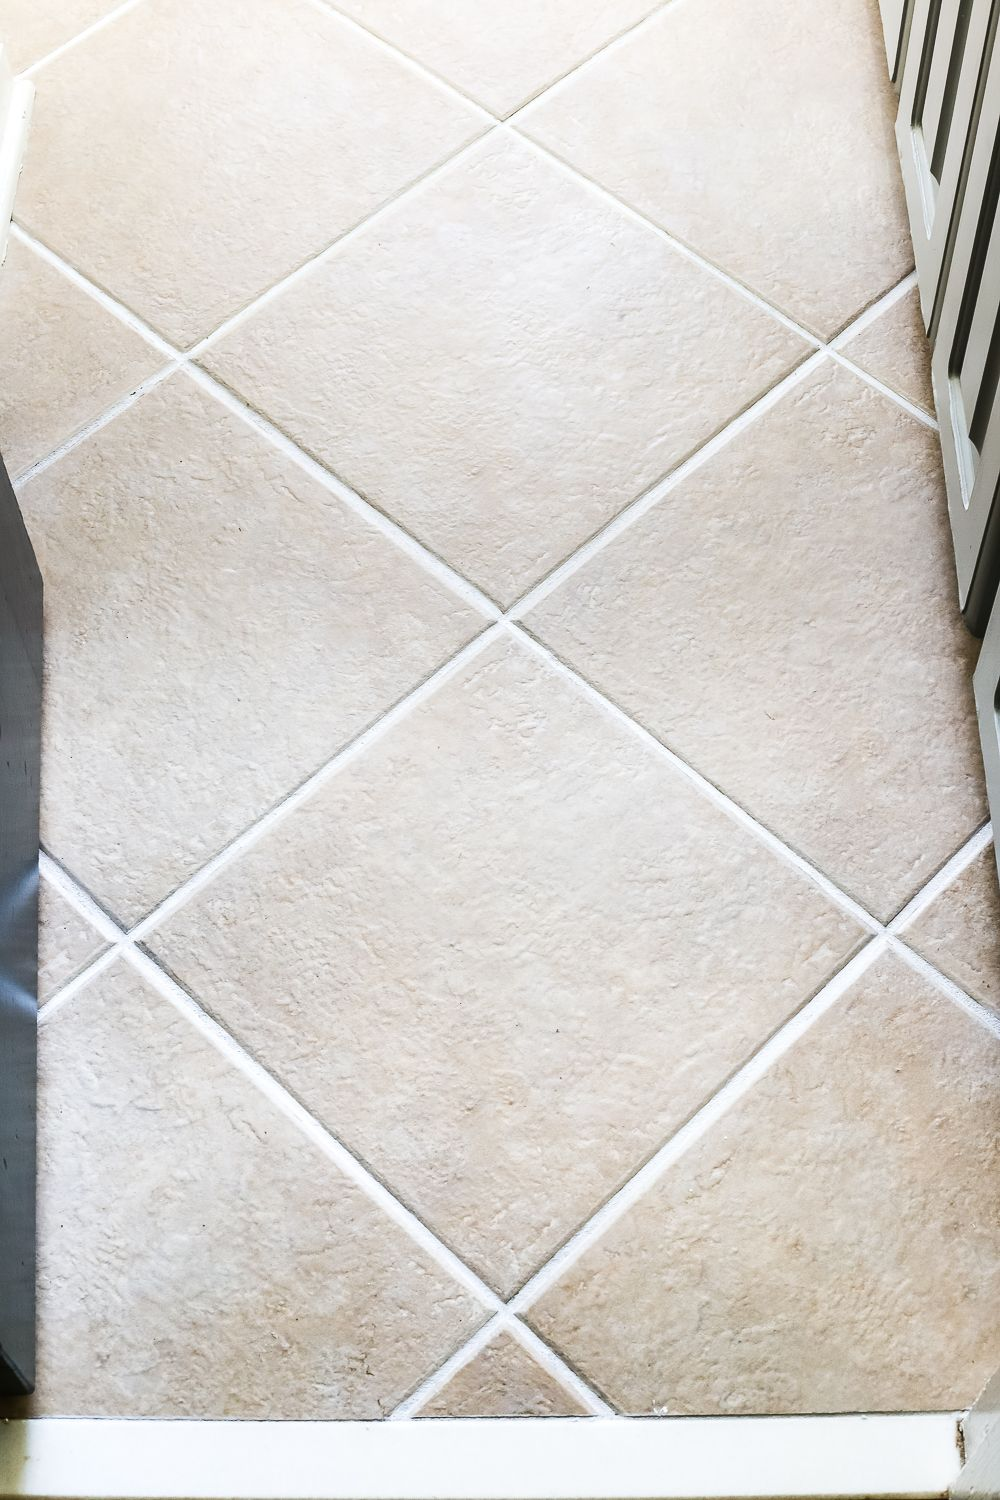 Painted Tile Grout Refresh | Tile grout, Painted tiles and Grout